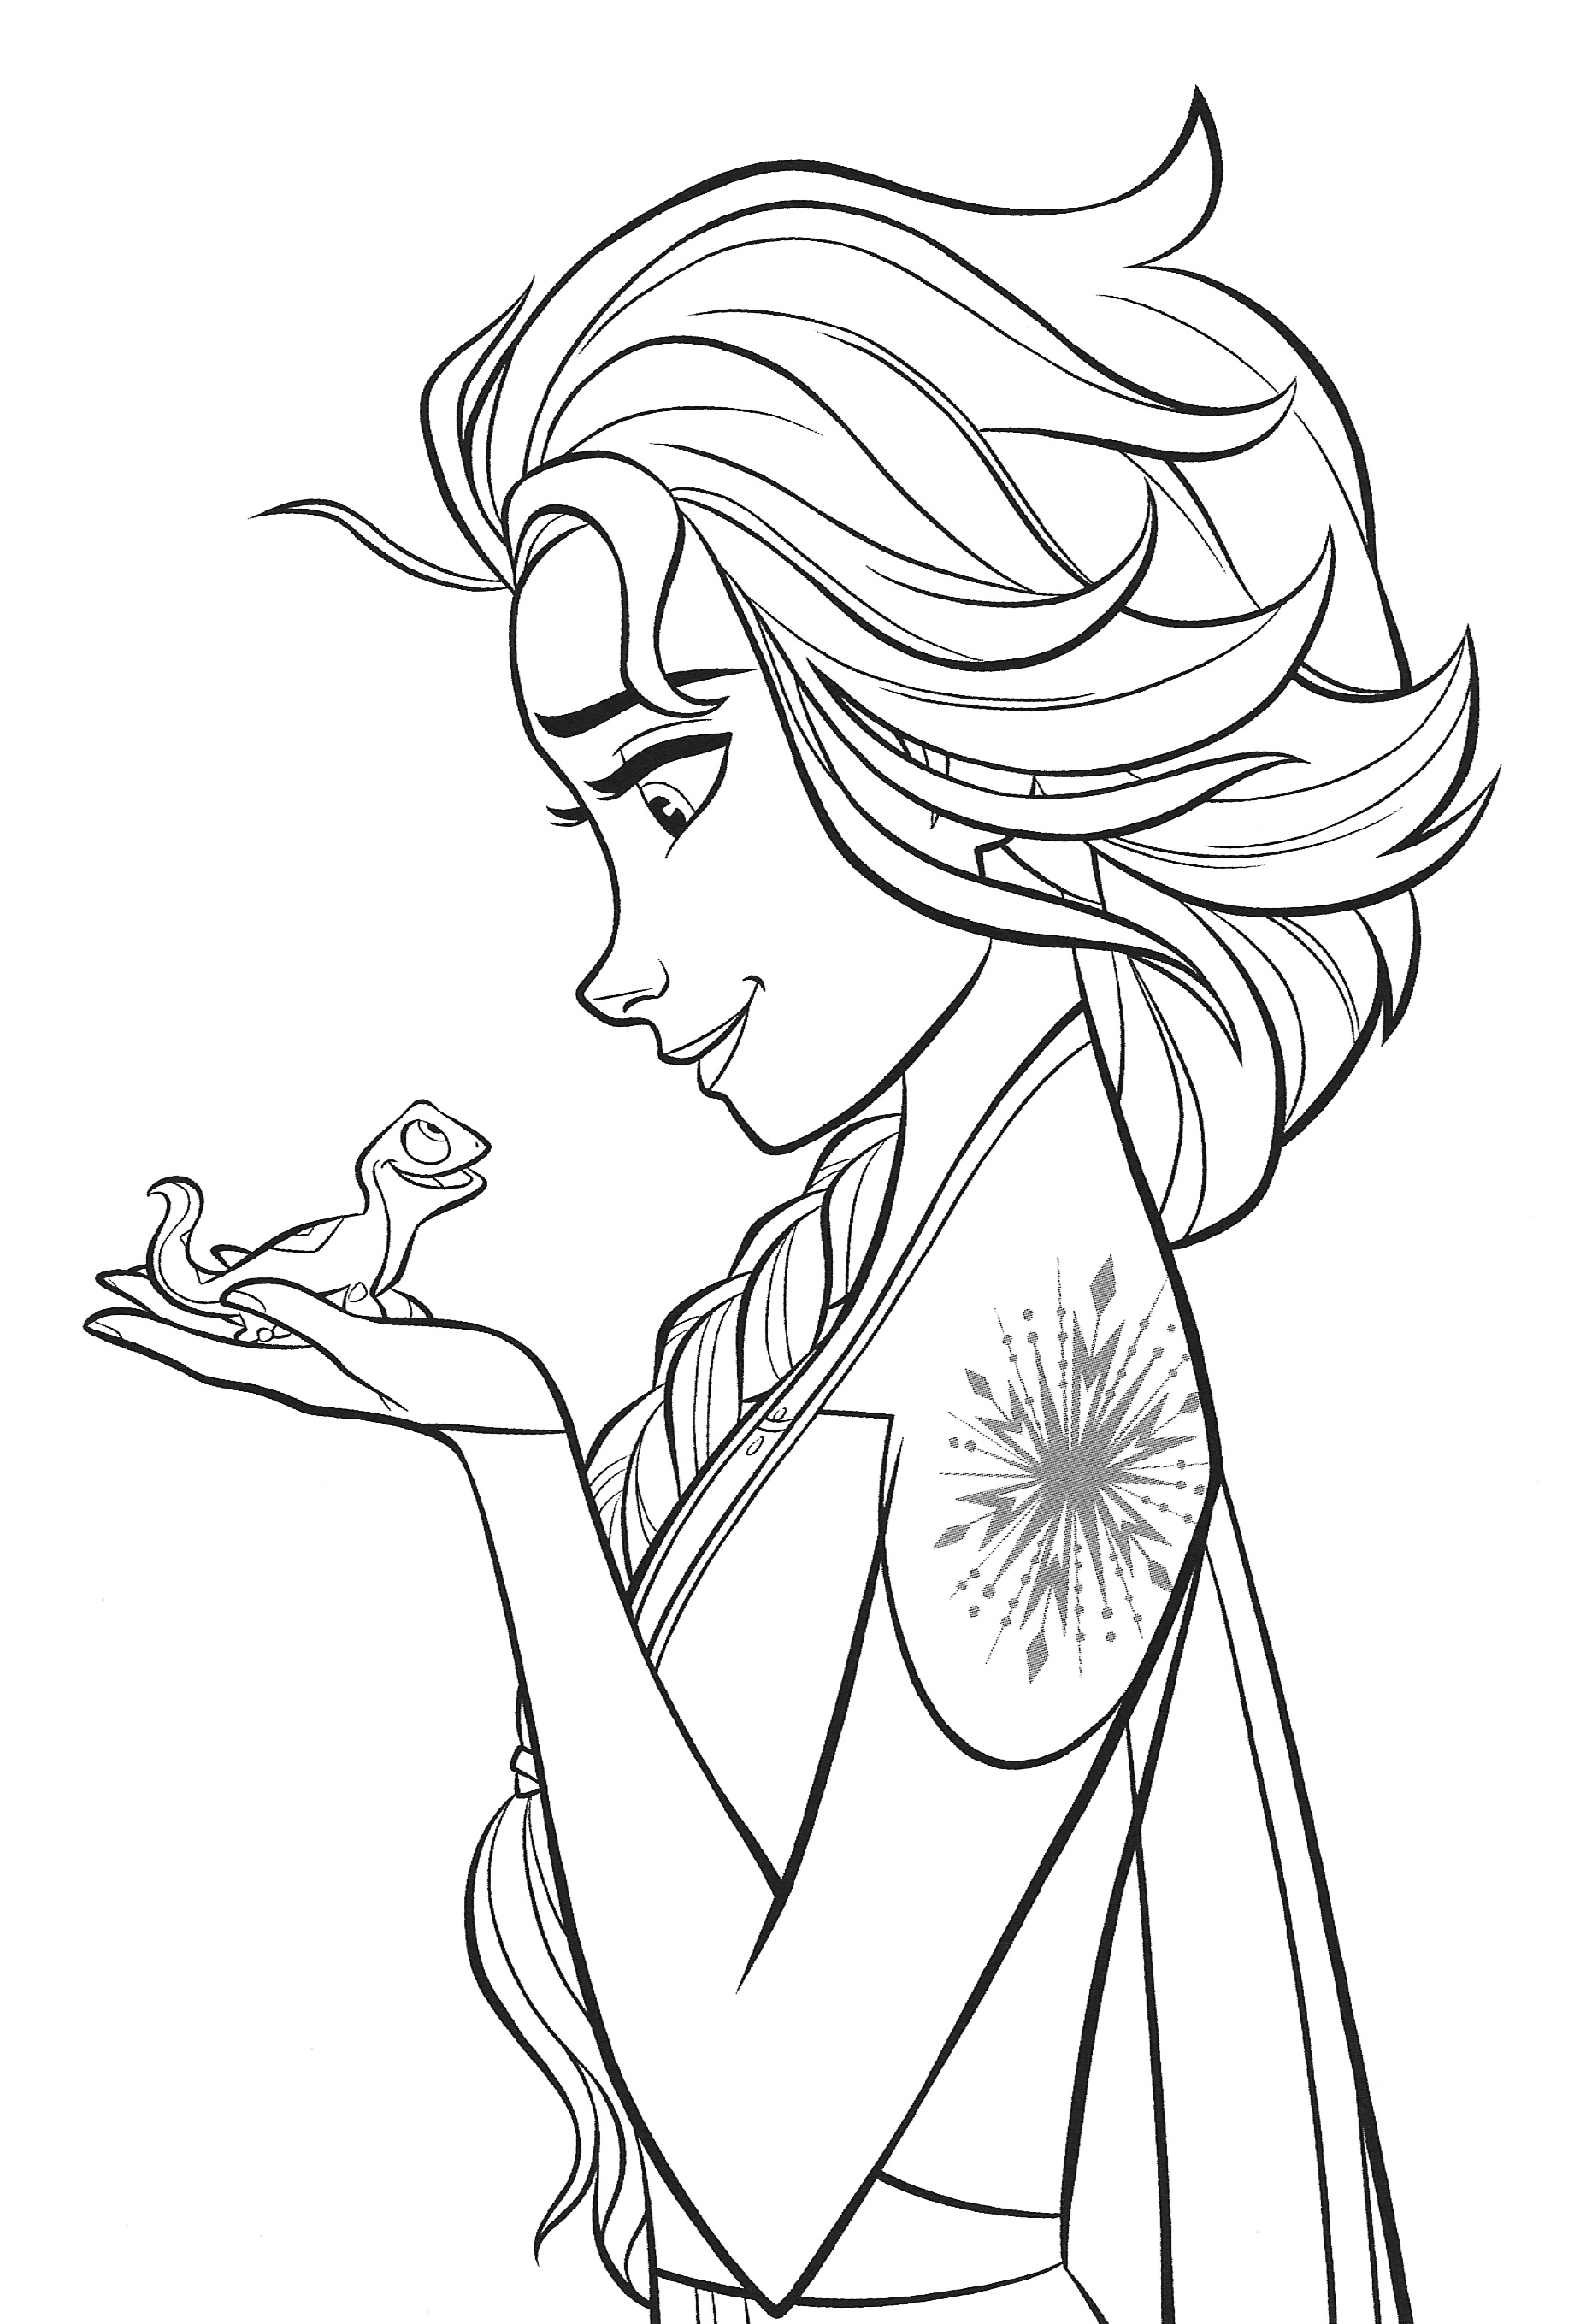 frozen colouring pages new frozen 2 coloring pages with elsa youloveitcom frozen colouring pages